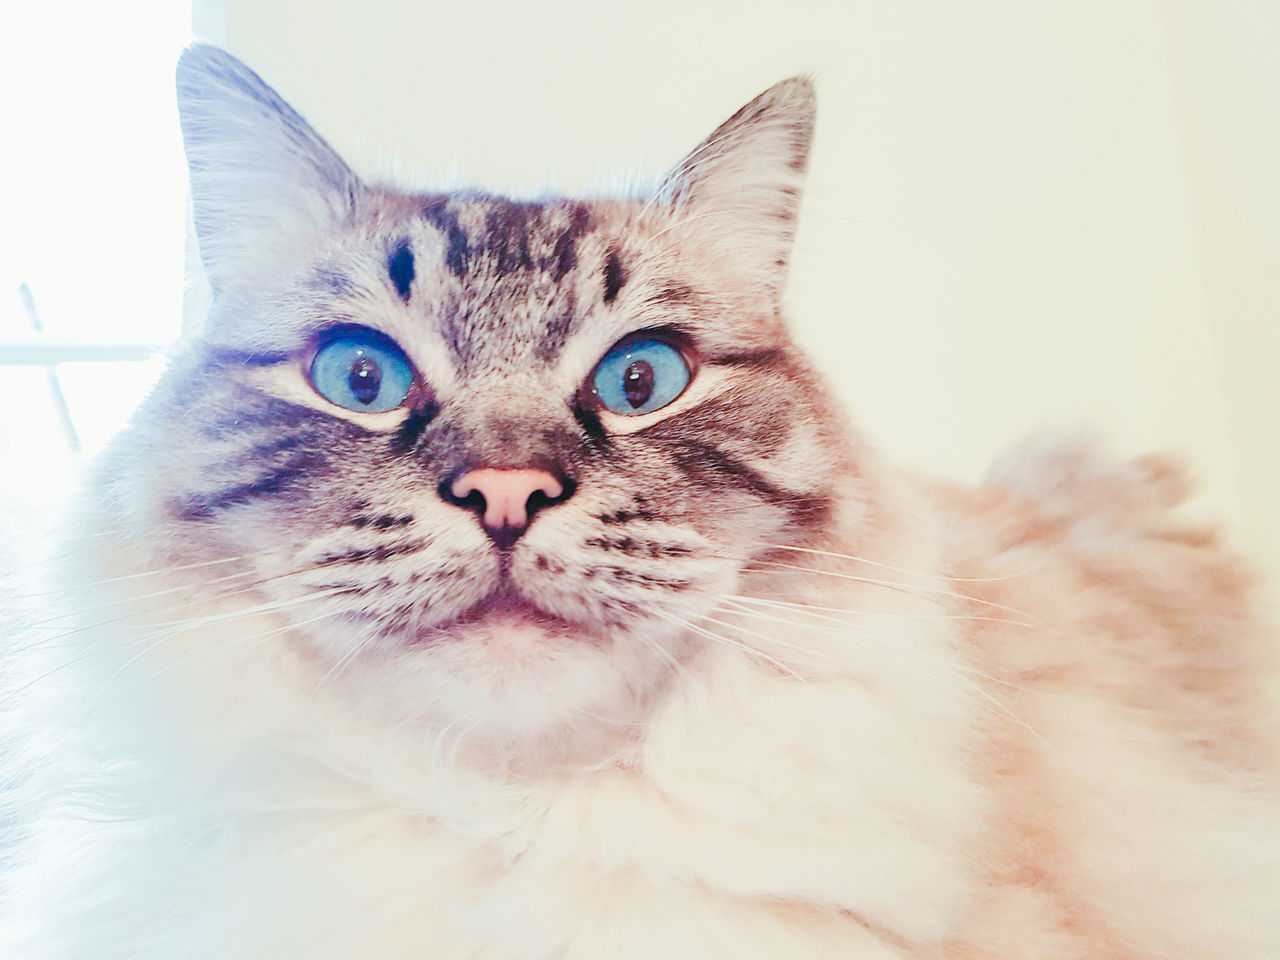 Shocked suprised expressions. Pedigree Ragdoll portrait. Domestic Cat Looking At Camera No People Animal Themes Feline Longhaired Cats Bright Eyes Ragdoll Cat Cute EyeEmNewHere Samsung Galaxy S7 Edge Funny Faces FUNNY ANIMALS Funnypictures Shocked Face SuprisedFace Facial Expression Domestic Animals Beautiful ♥ Catsoftheworld Pet Photography  Stunning Animal Blue Eyes Funnycatface Pulling Faces  Close-up